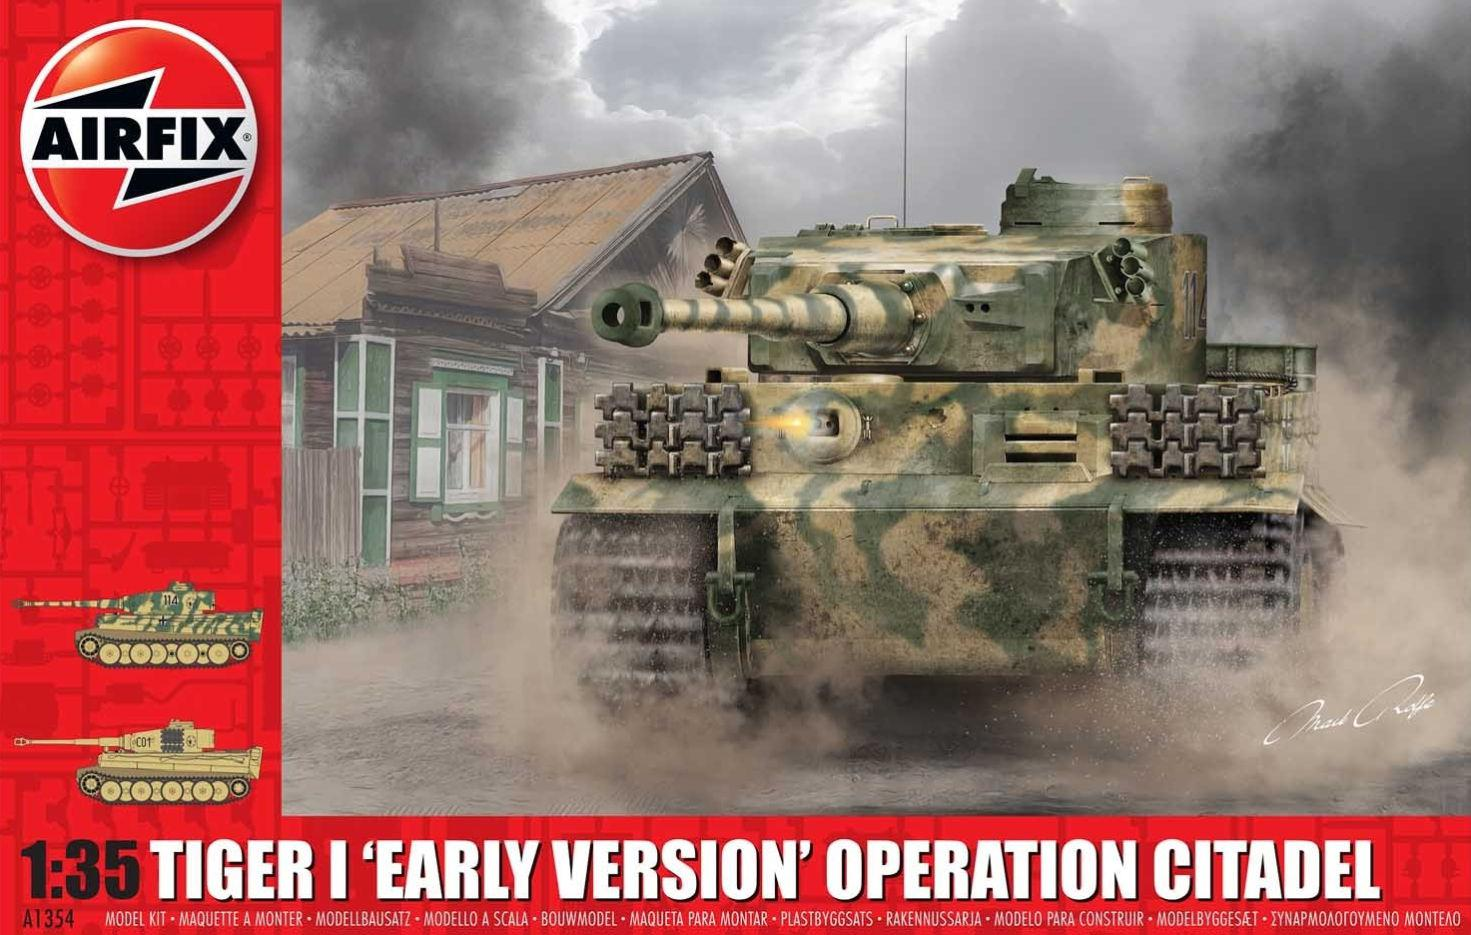 Airfix Tiger 1 Early Version - Operation Citadel 1:35 A1354